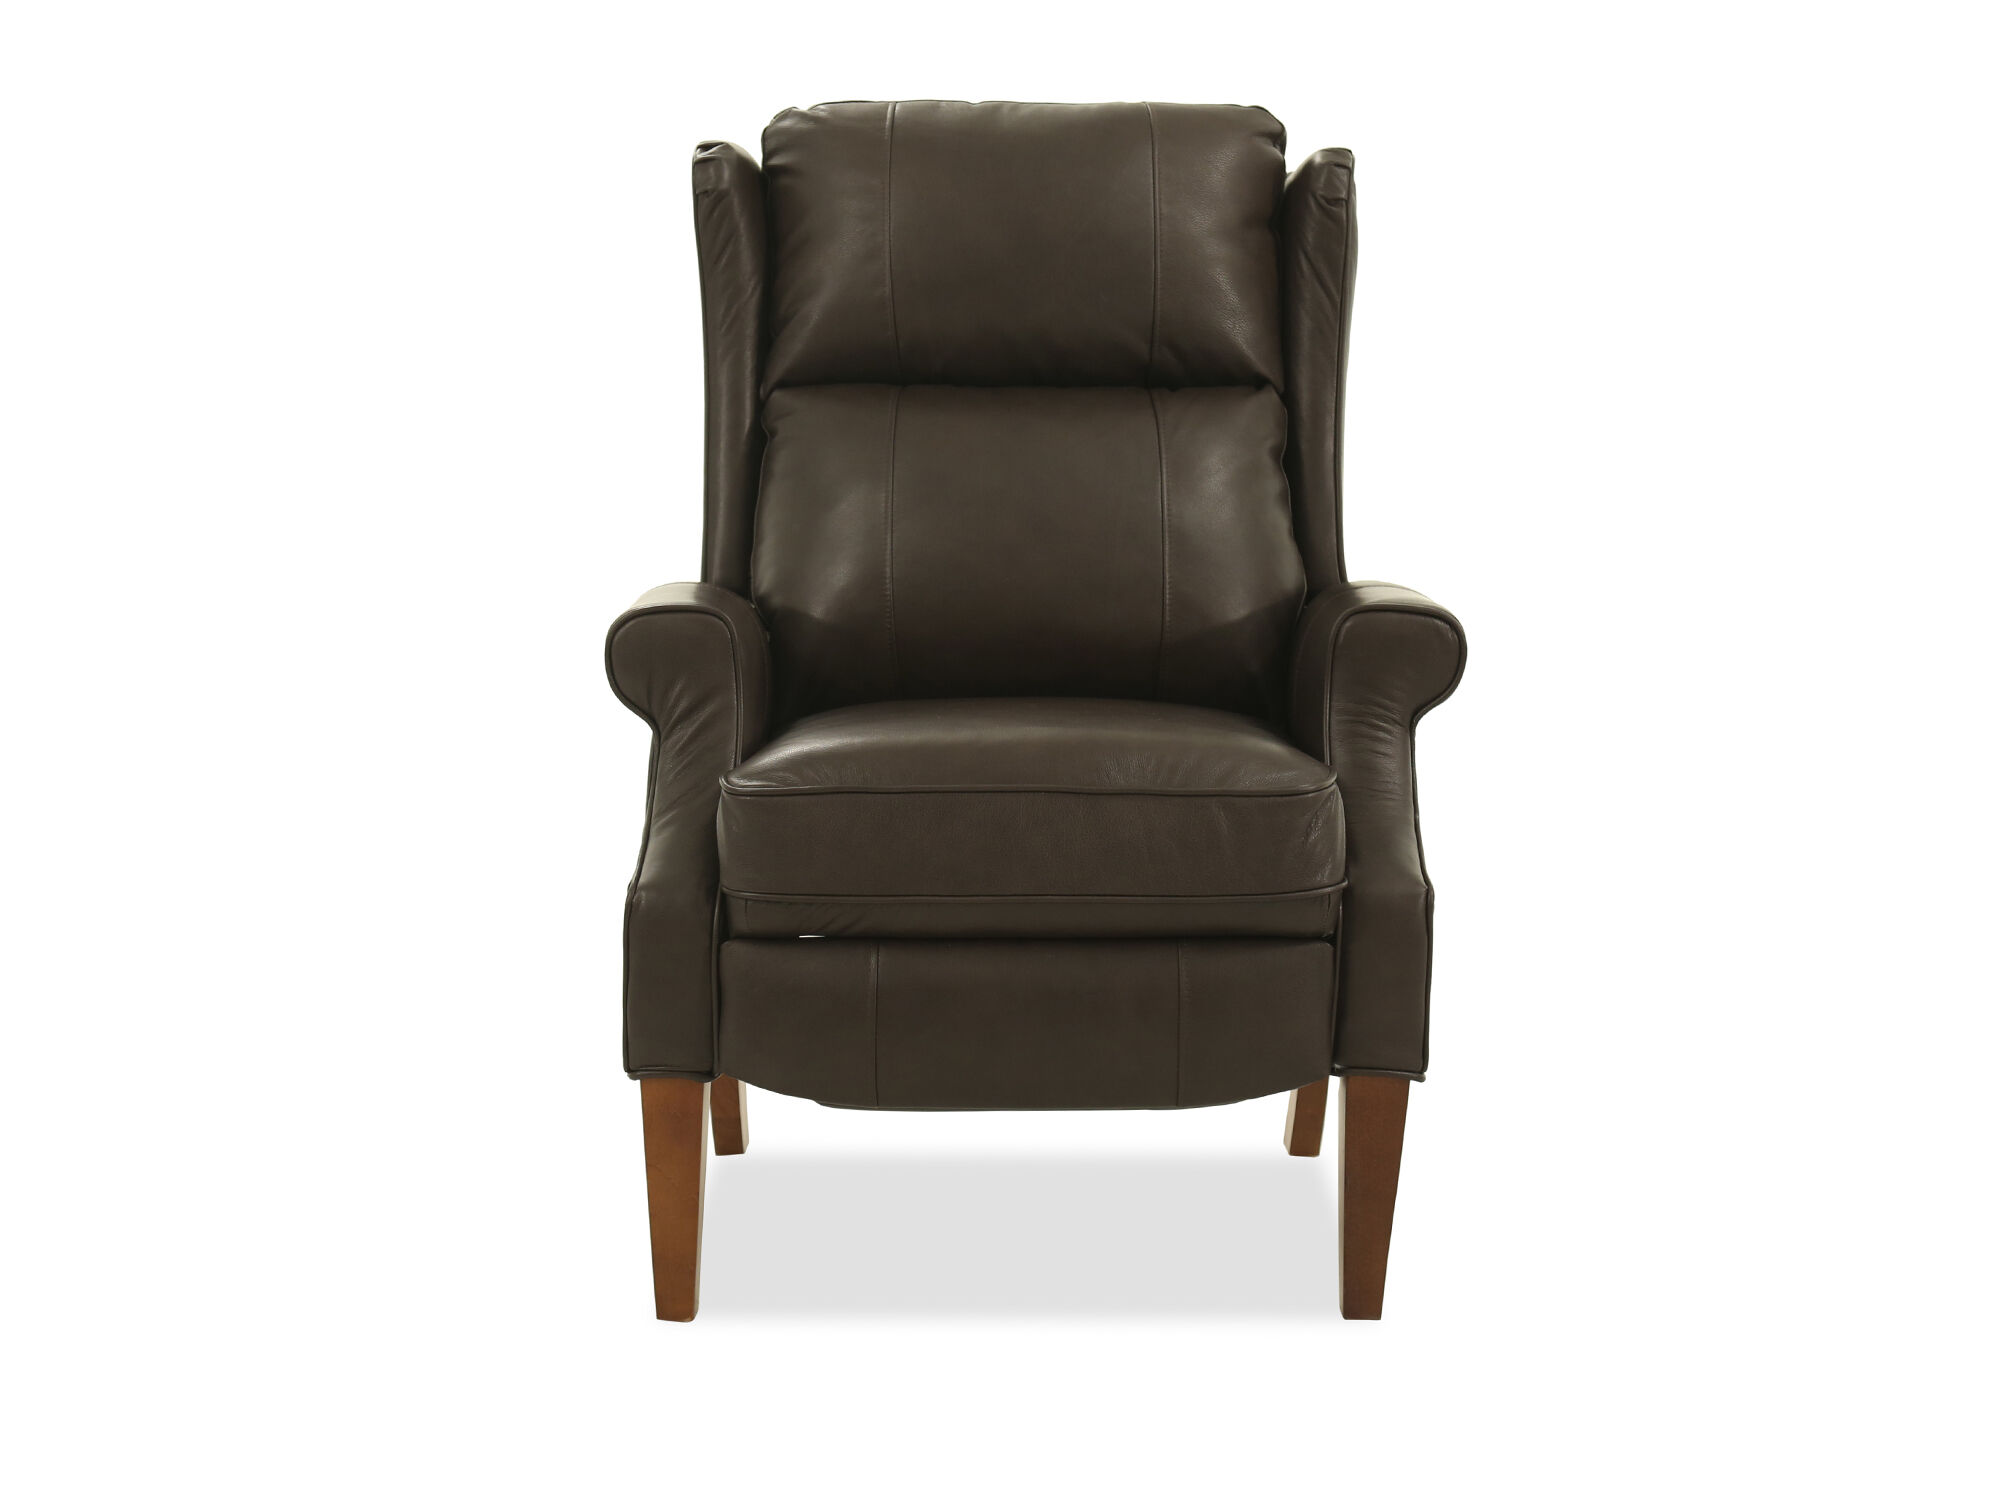 Wingback 305 Leather HighLeg Recliner in Brown  Mathis